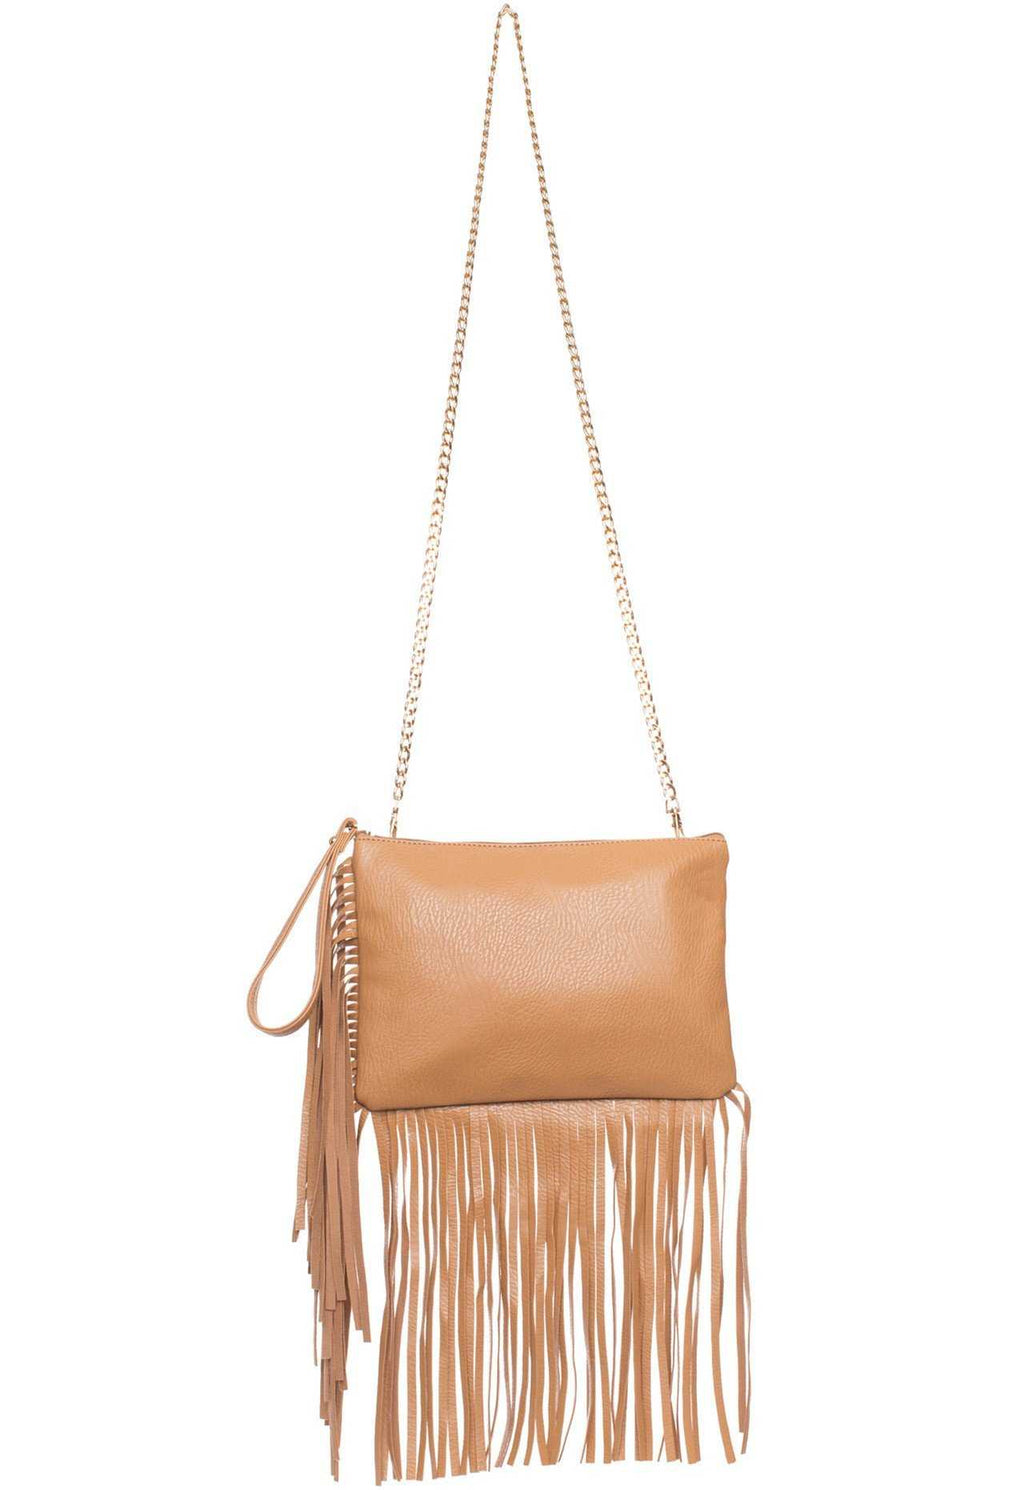 Accessories - Dream Chaser Fringe Purse - Taupe